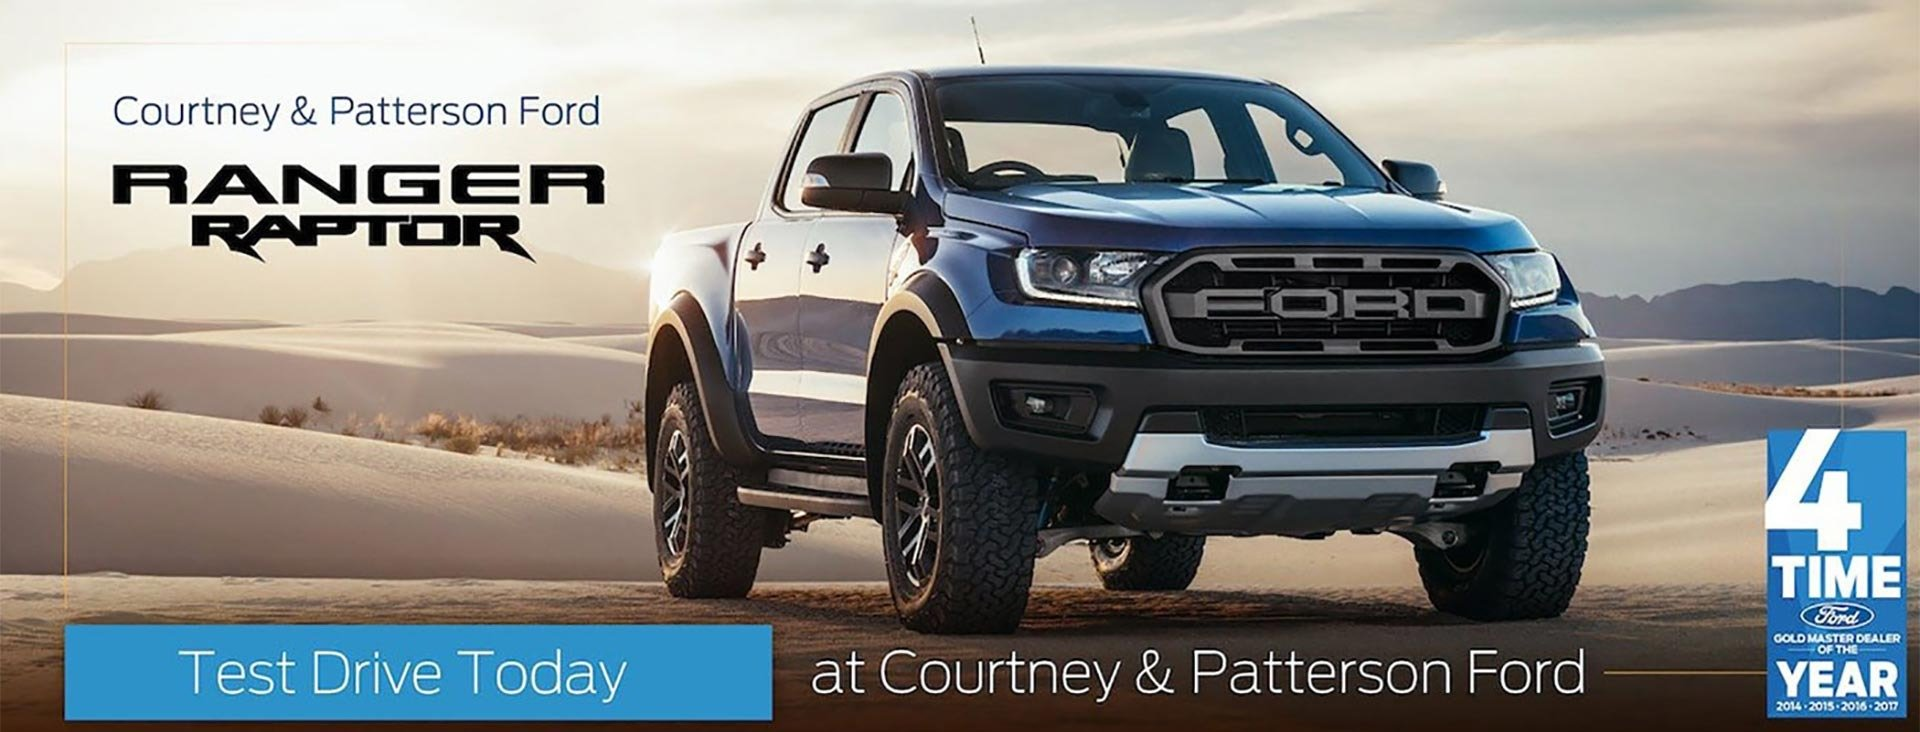 Raptor at Courtney and Patterson Ford